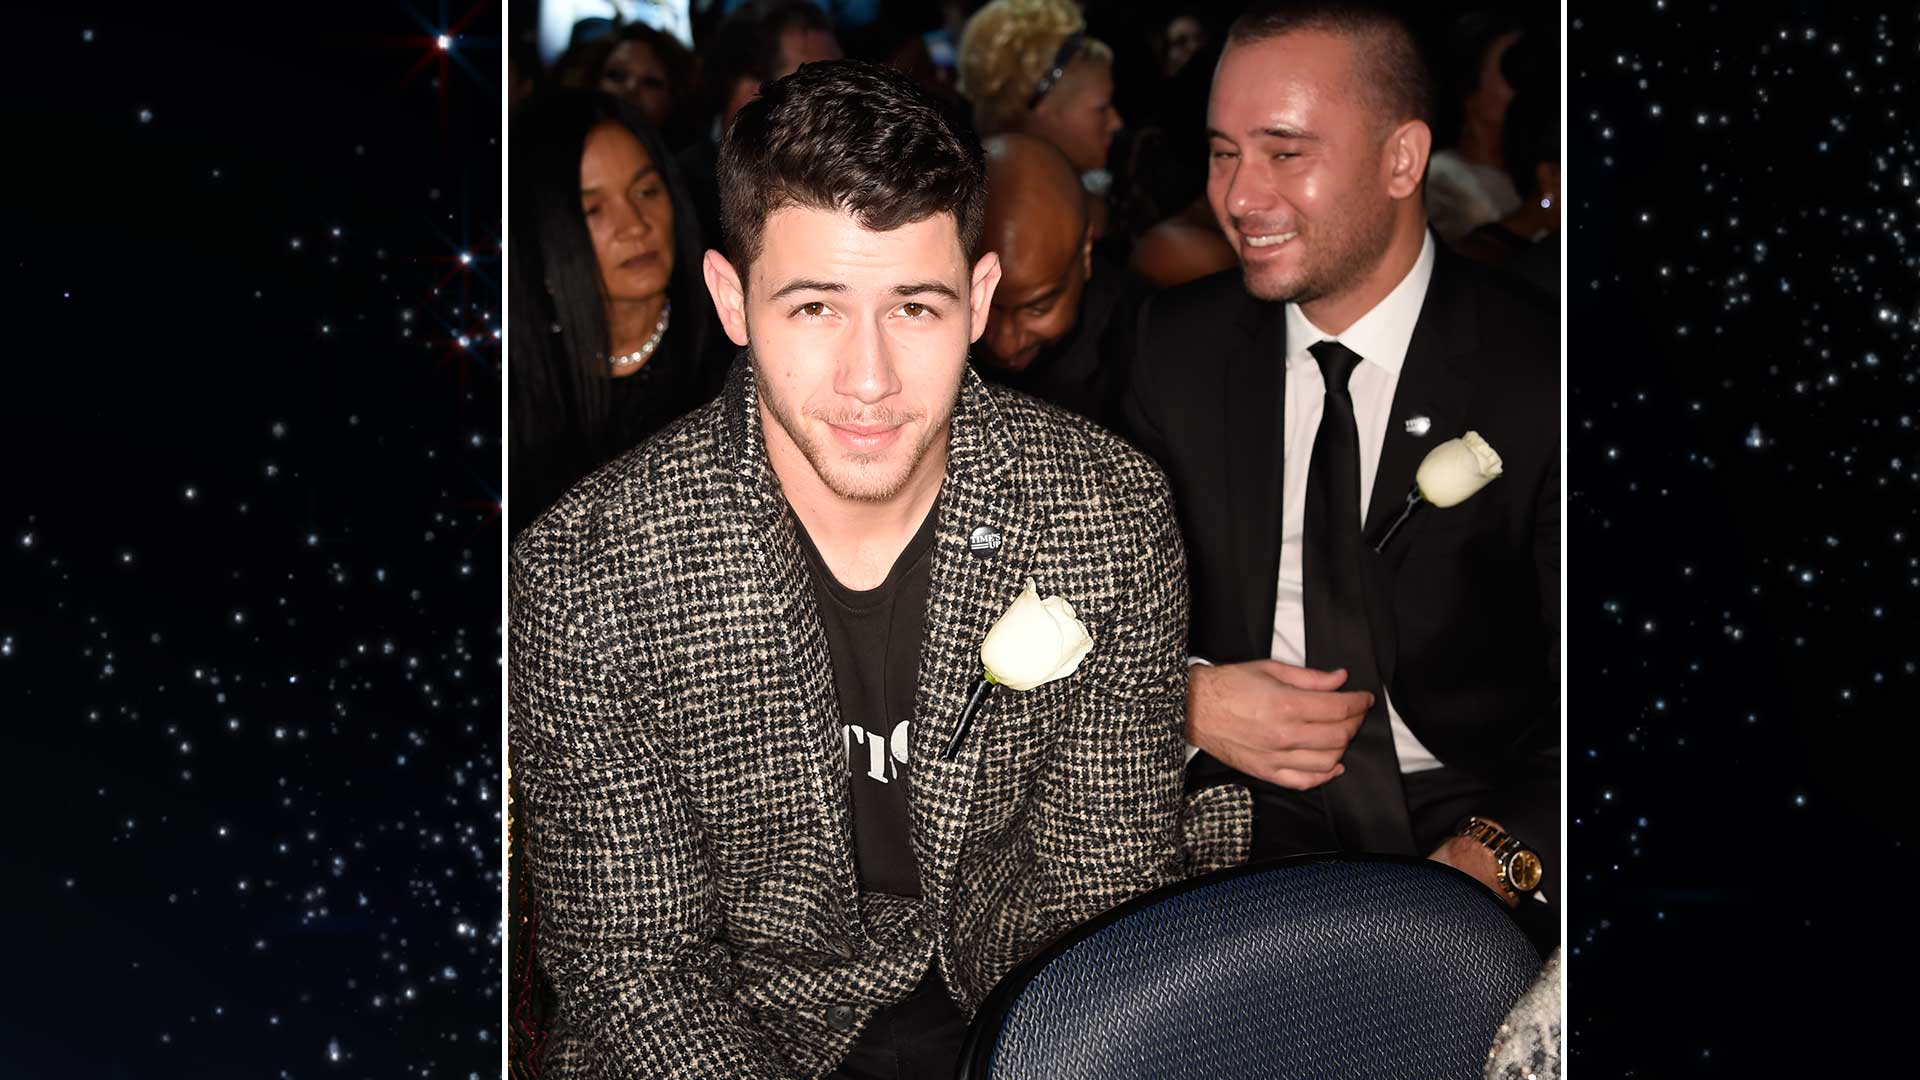 Nick Jonas, who presented at the 2018 GRAMMY Awards, offers a come-hither glance from his seat at Madison Square Garden.